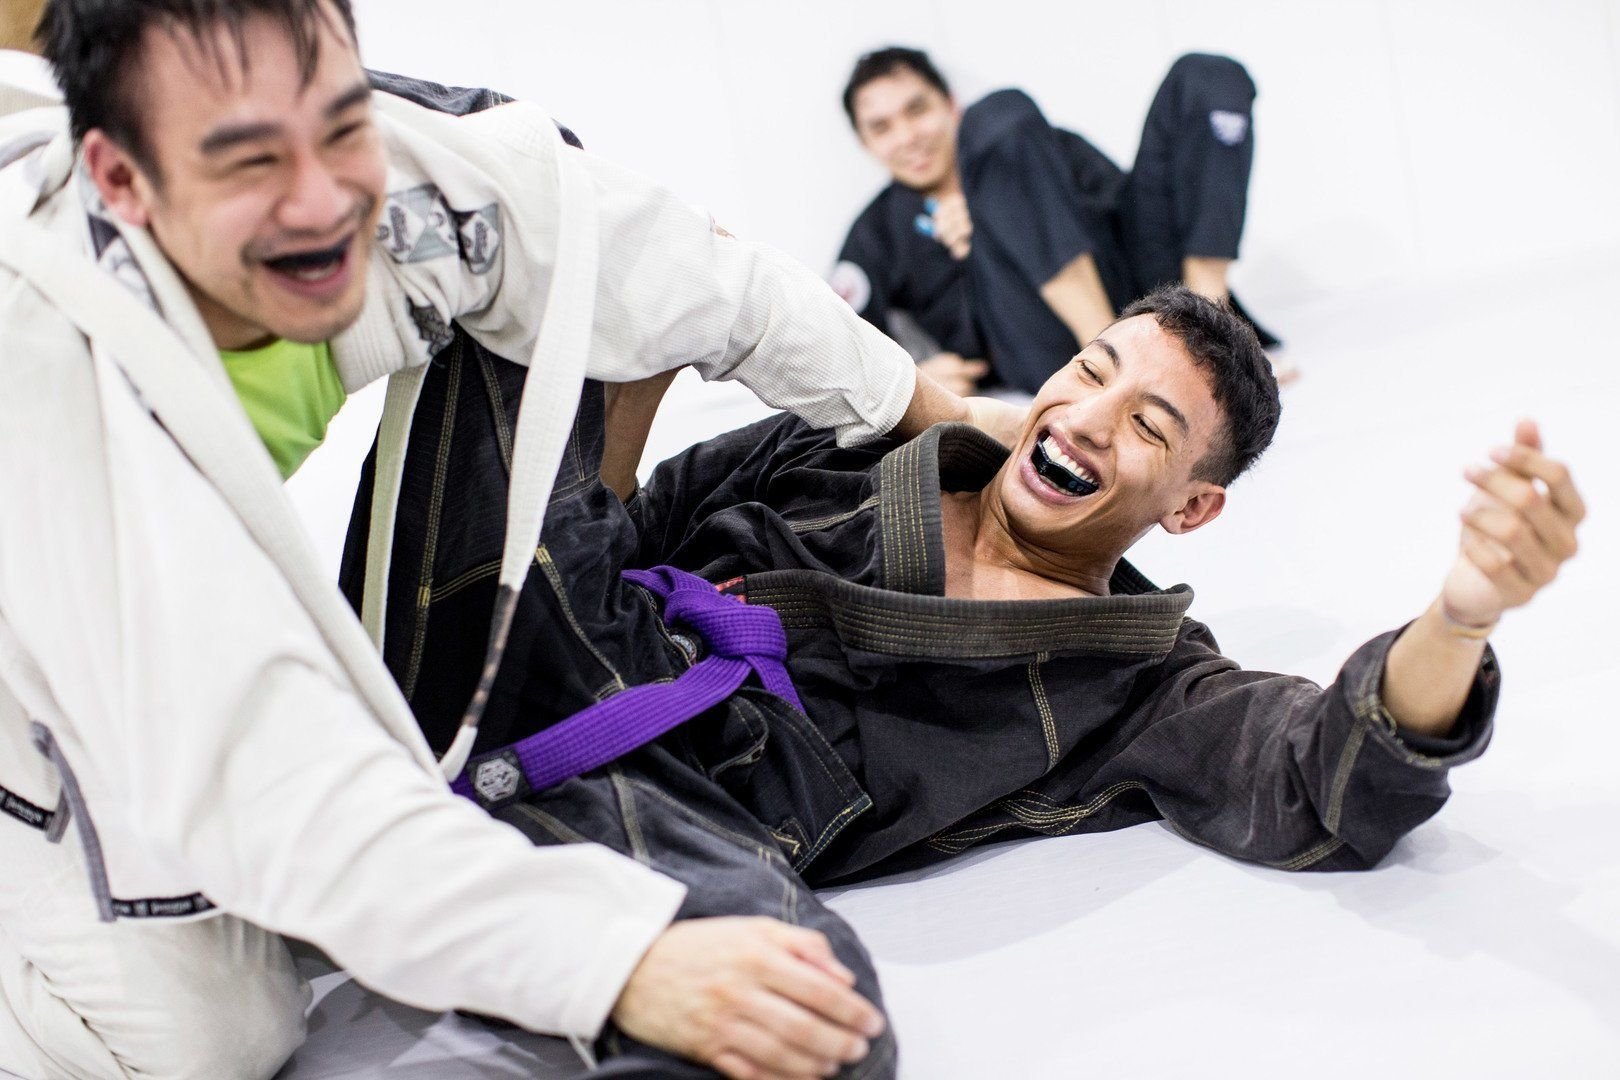 brazilian jiu-jitsu gyms in singapore